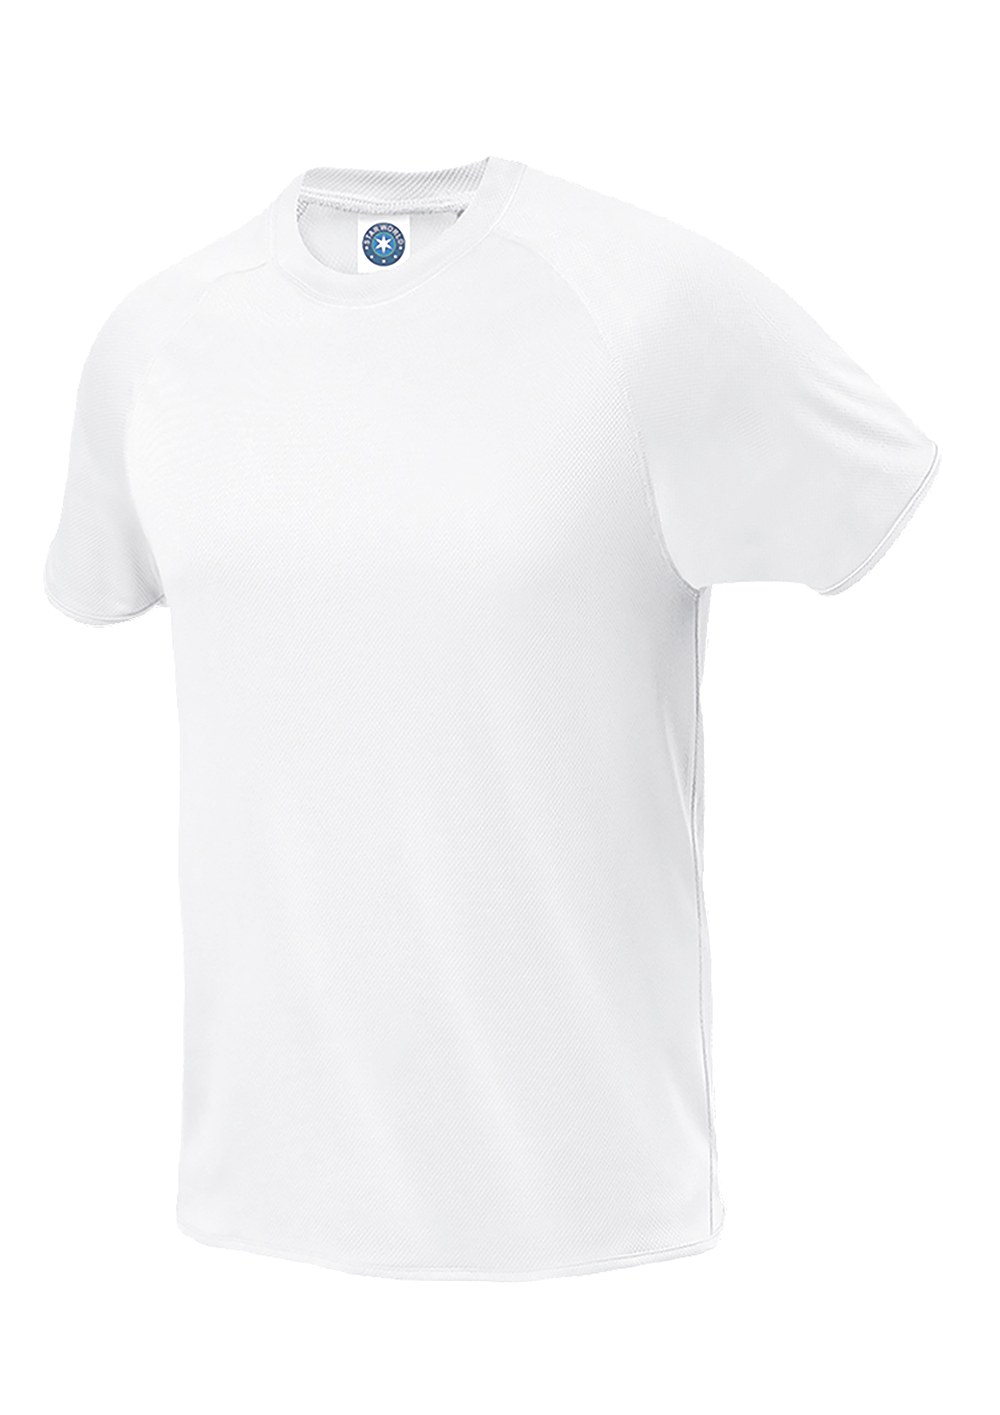 SW830-03-White.png